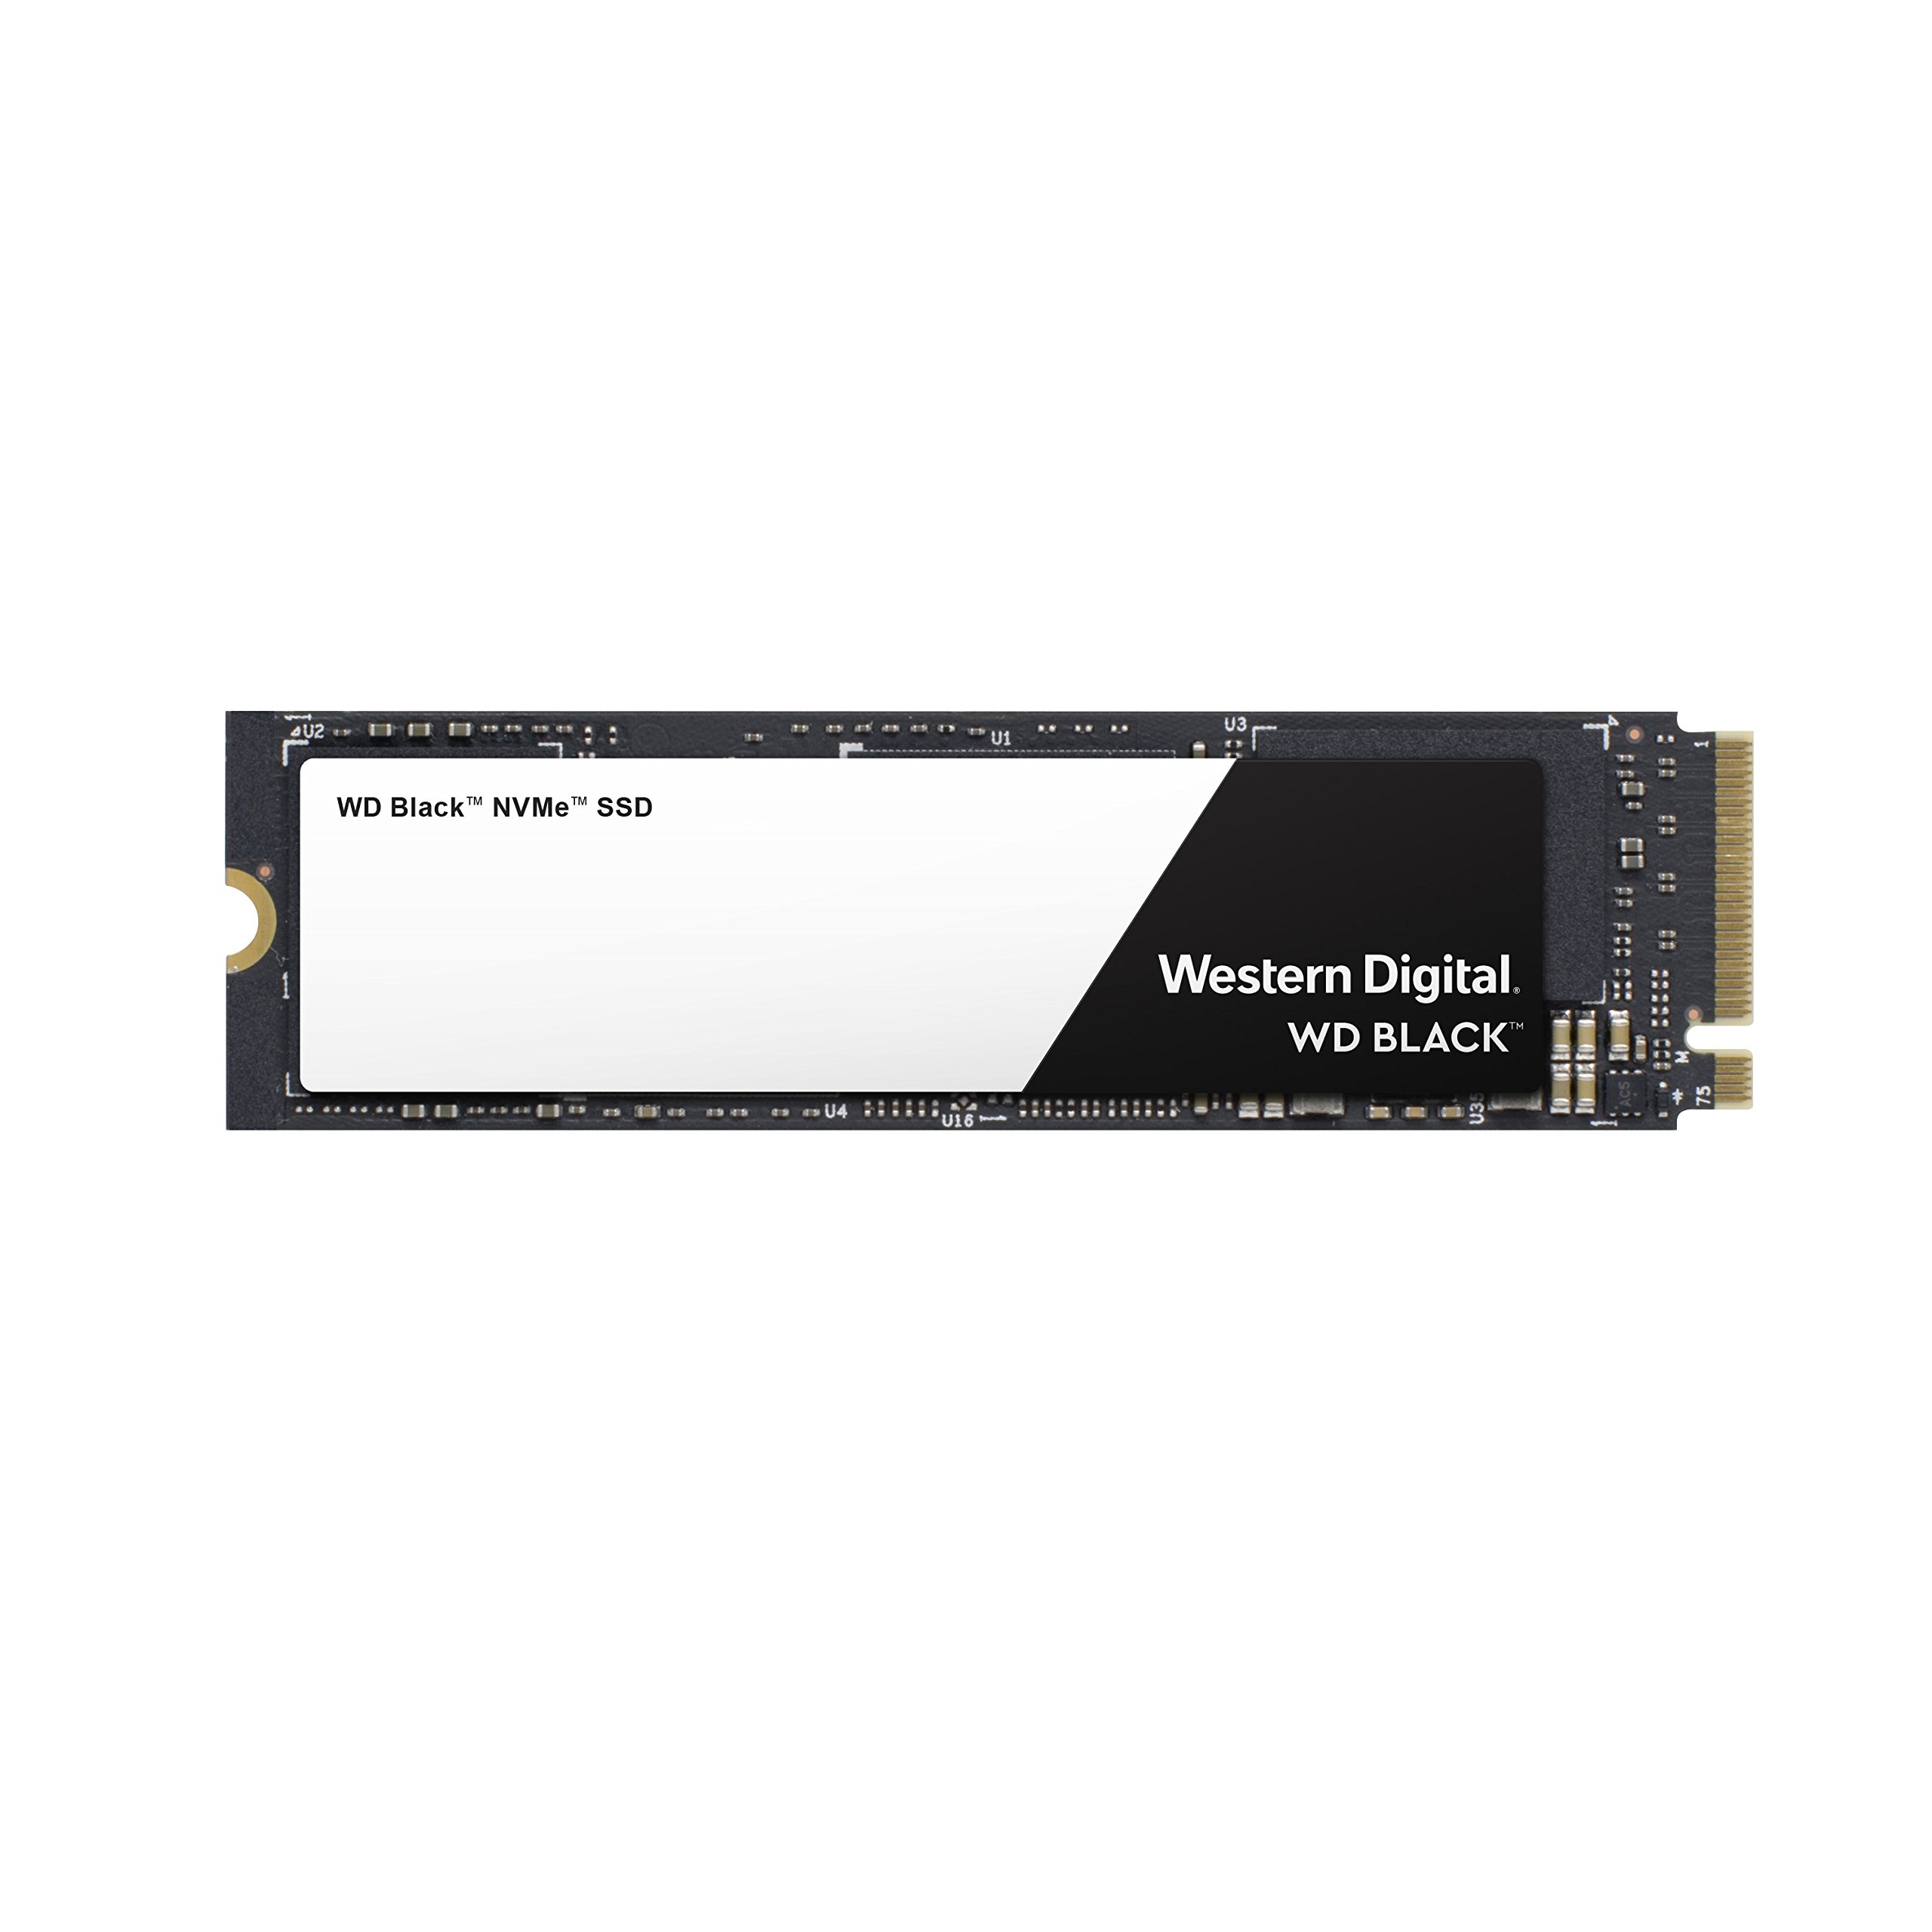 WD Black 250GB High-Performance NVMe PCIe Gen3 8 Gb/s M.2 2280 SSD - WDS250G2X0C